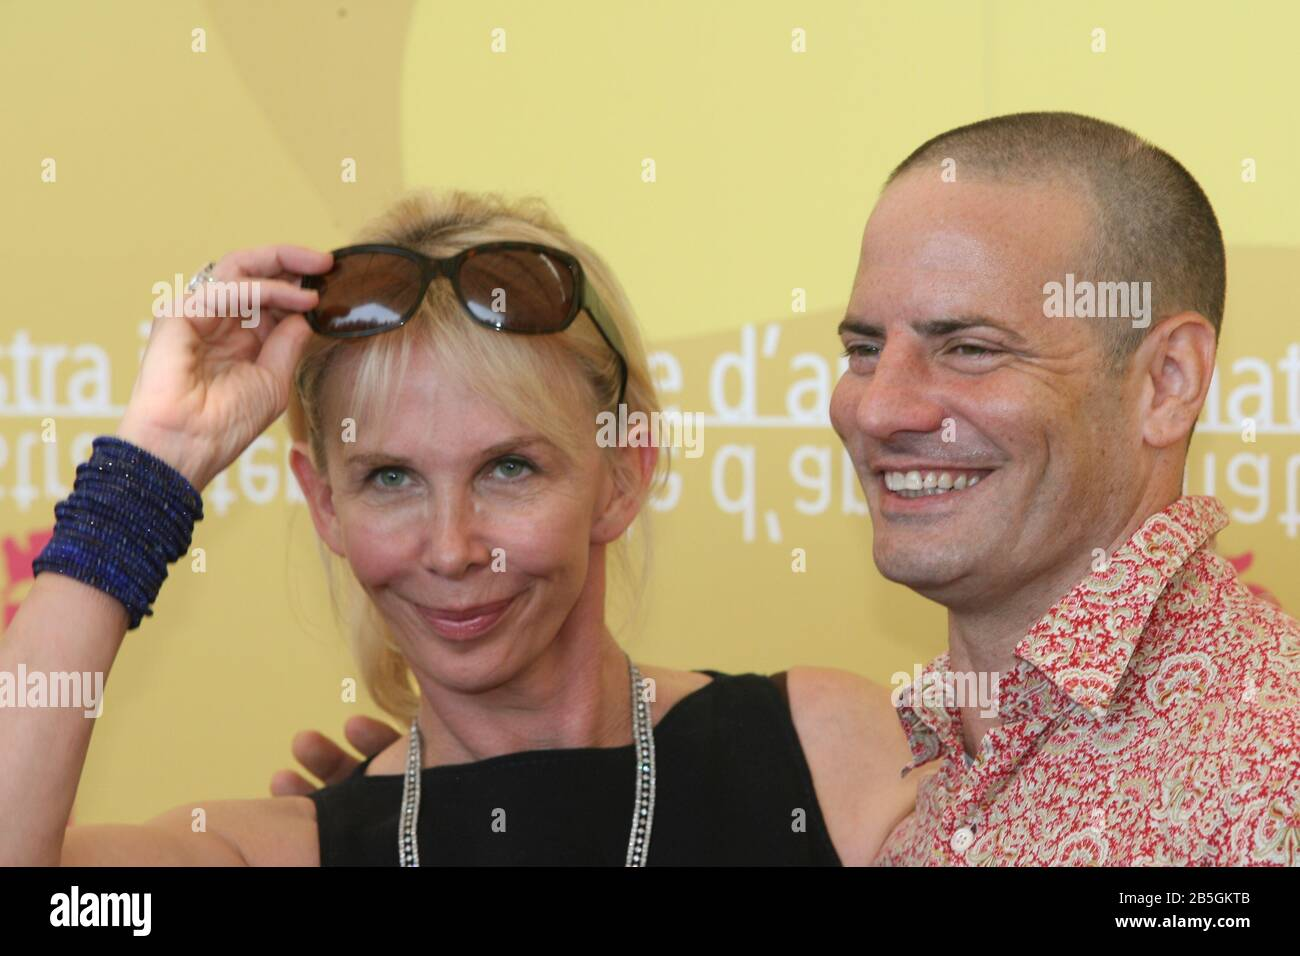 """Venice, 03/09/2006. 63rd Venice Film Festival. Trudie Styler and Dito Montiel attending the photocall for the film """"A Guide to Recognize your Saints"""" Stock Photo"""